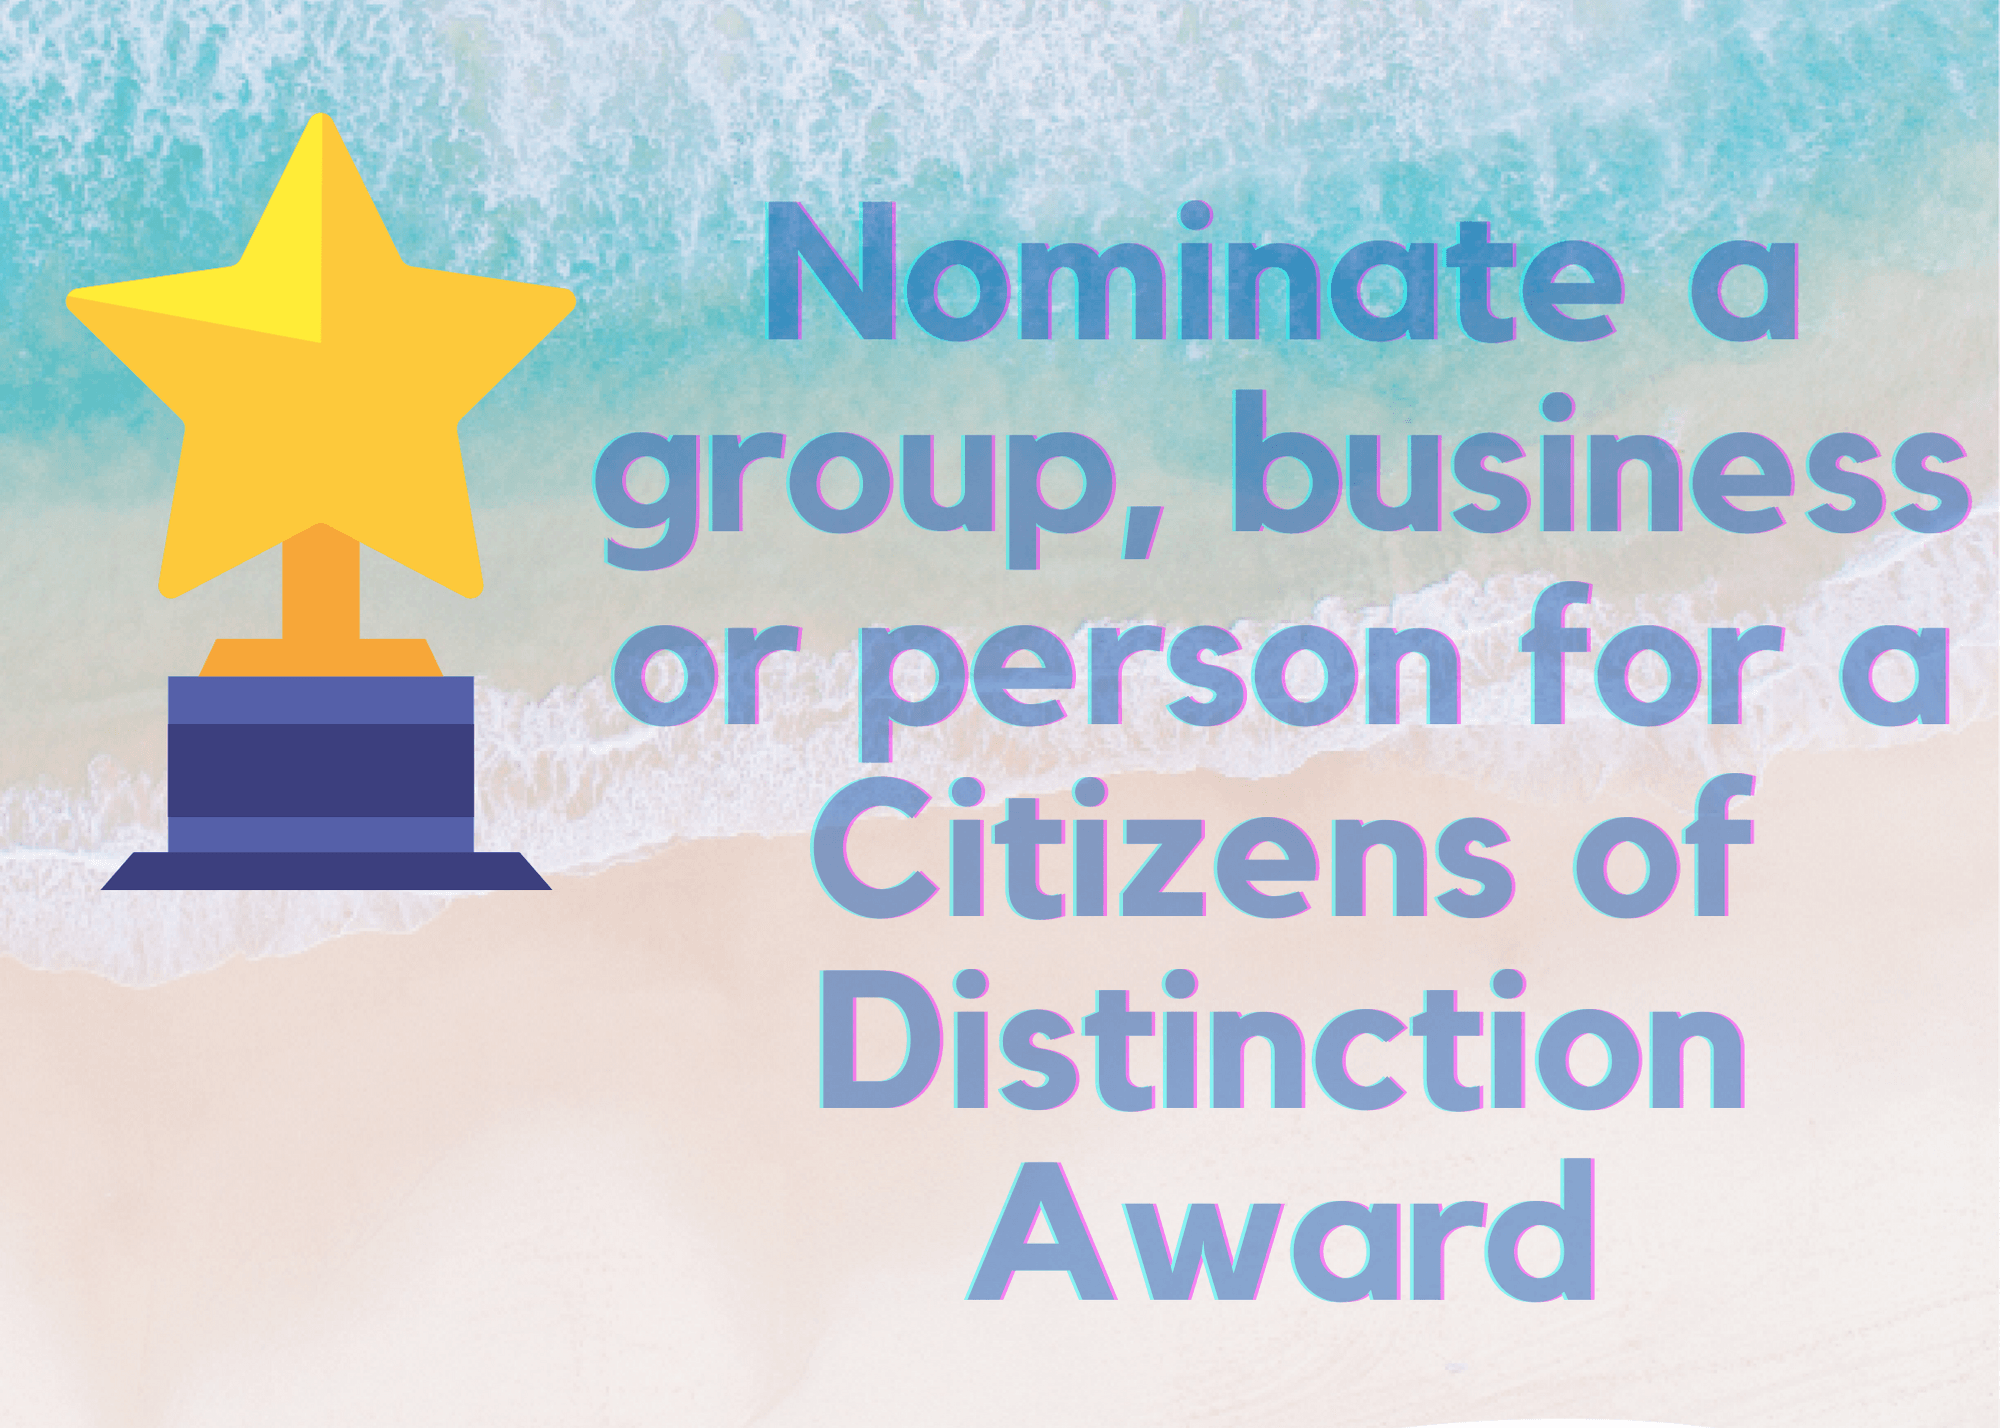 citizens of distinction award 2021